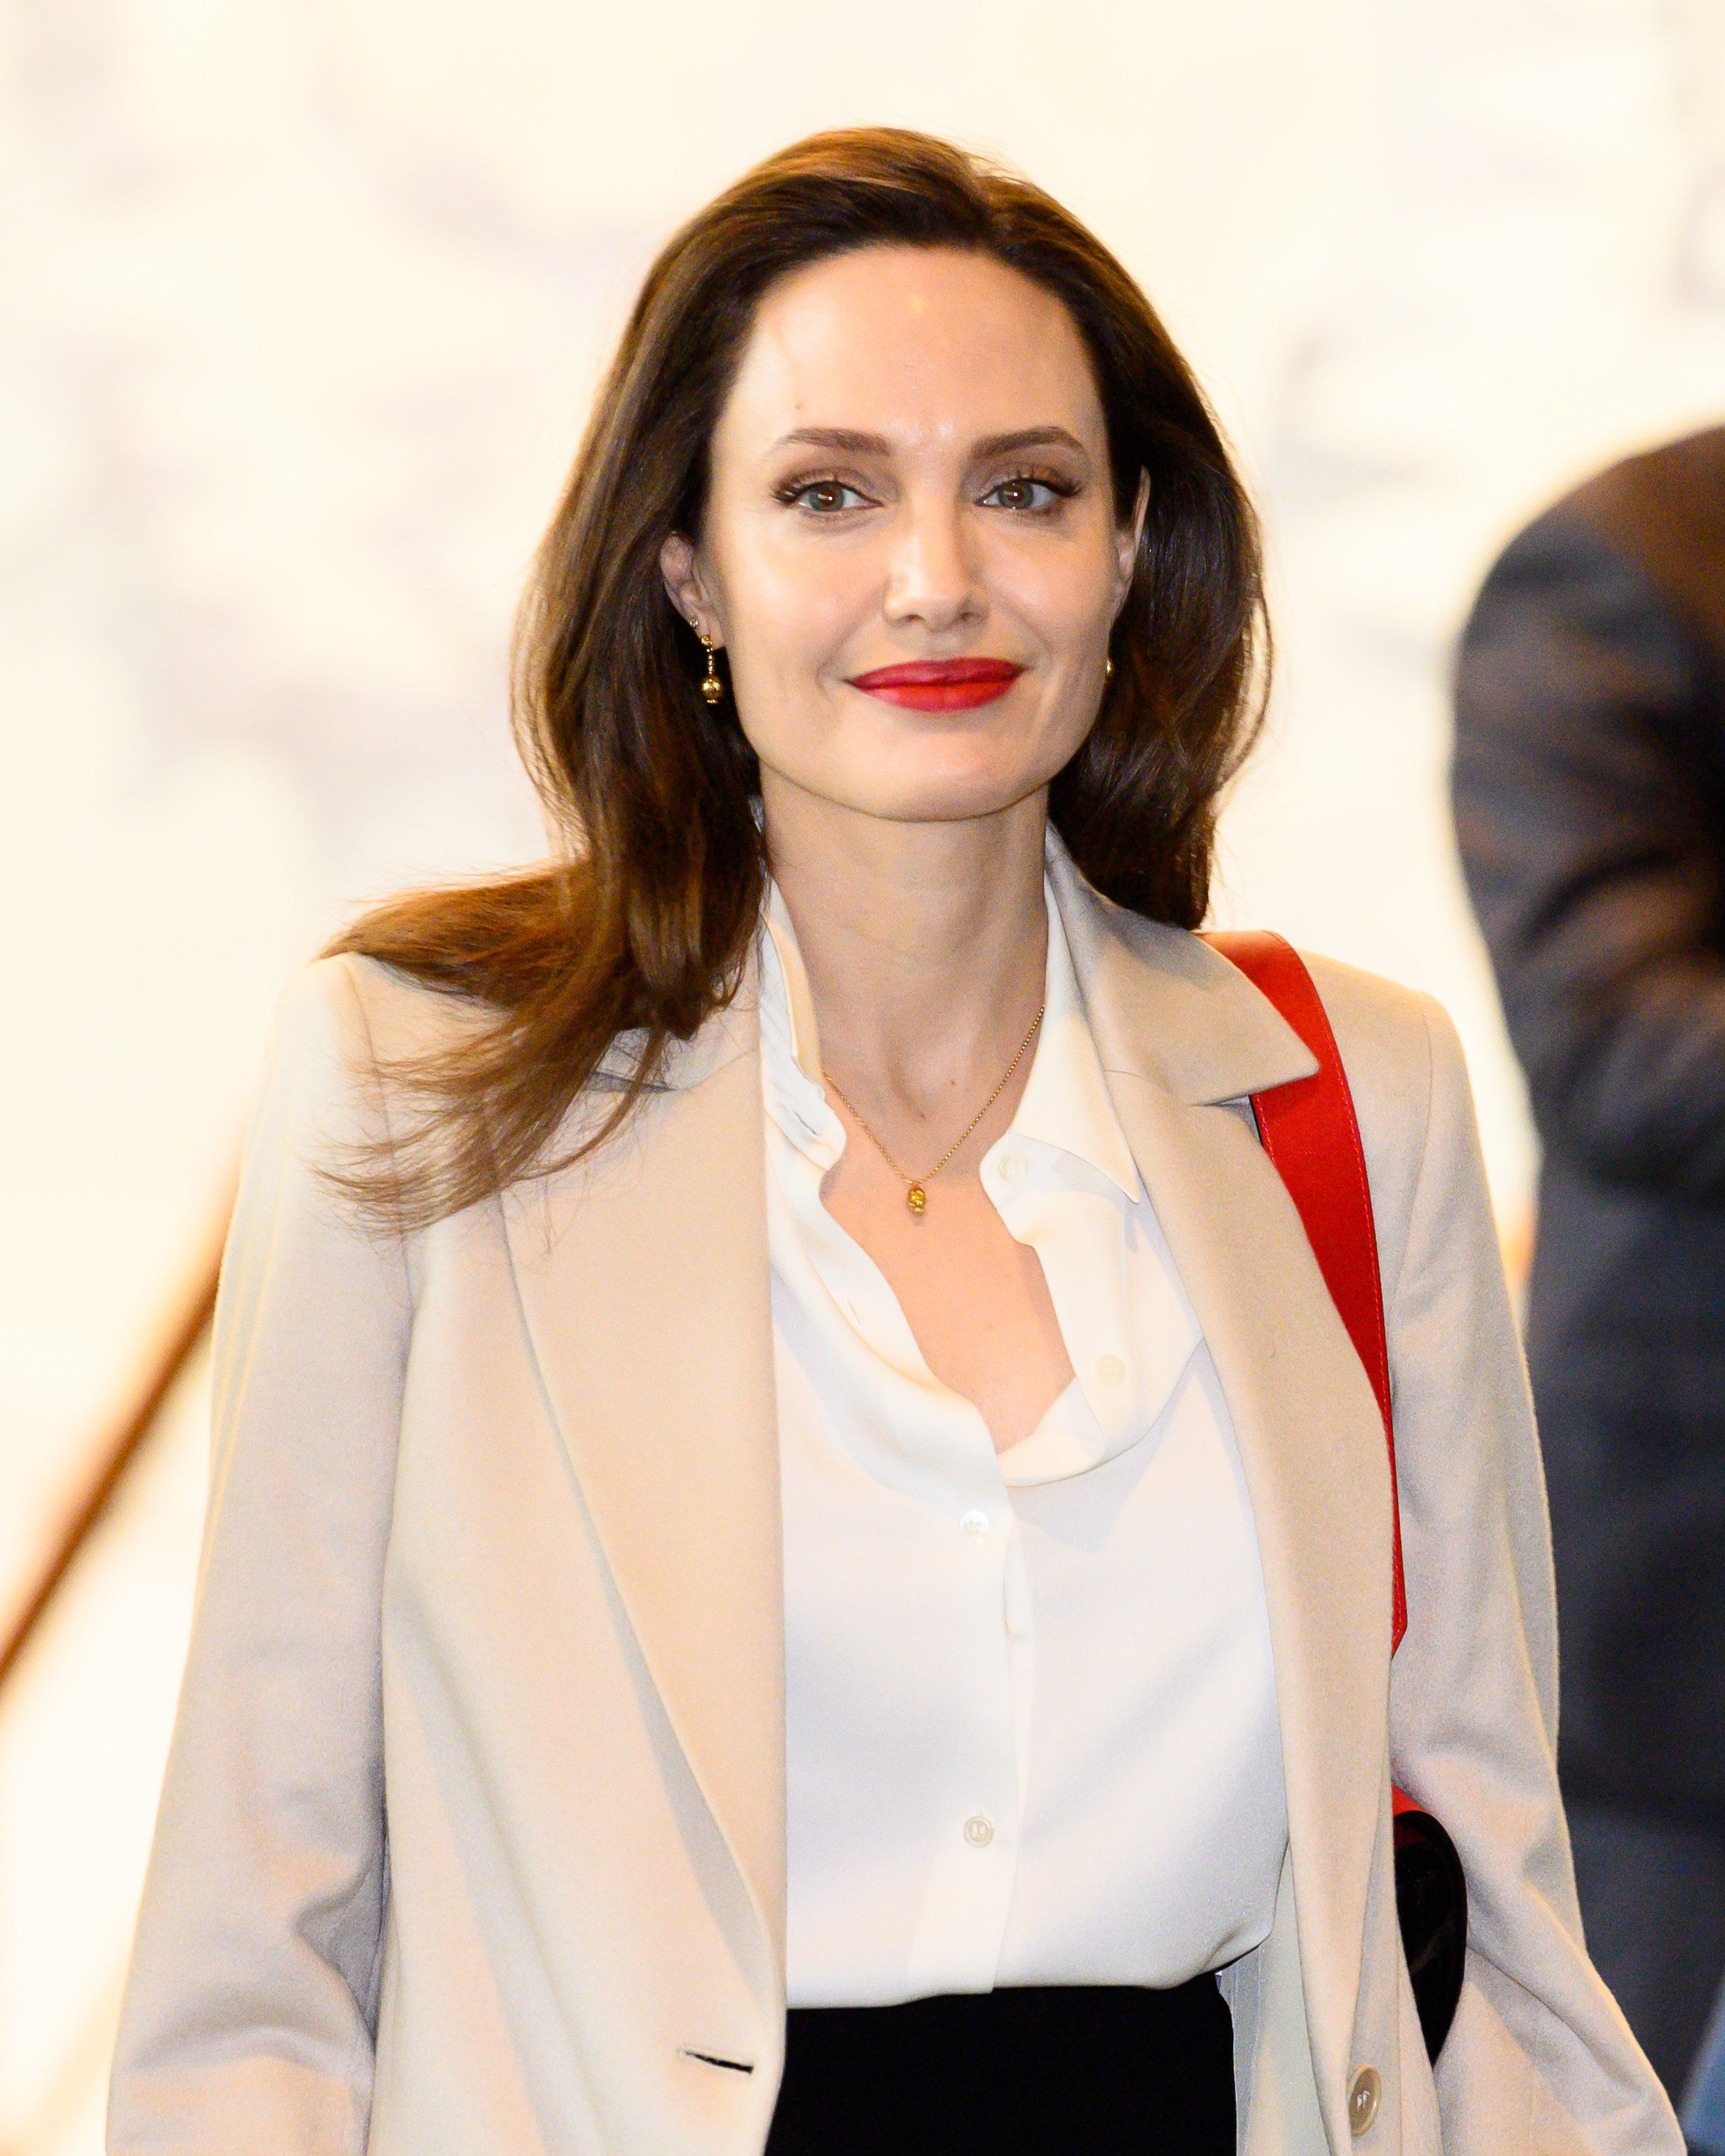 NEW YORK, NY, UNITED STATES - 2019/03/29: Angelina Jolie, Actor and UNHCR Special Envoy seen during the United Nations General Assembly in New York City. (Photo by Michael Brochstein/SOPA Images/LightRocket via Getty Images)